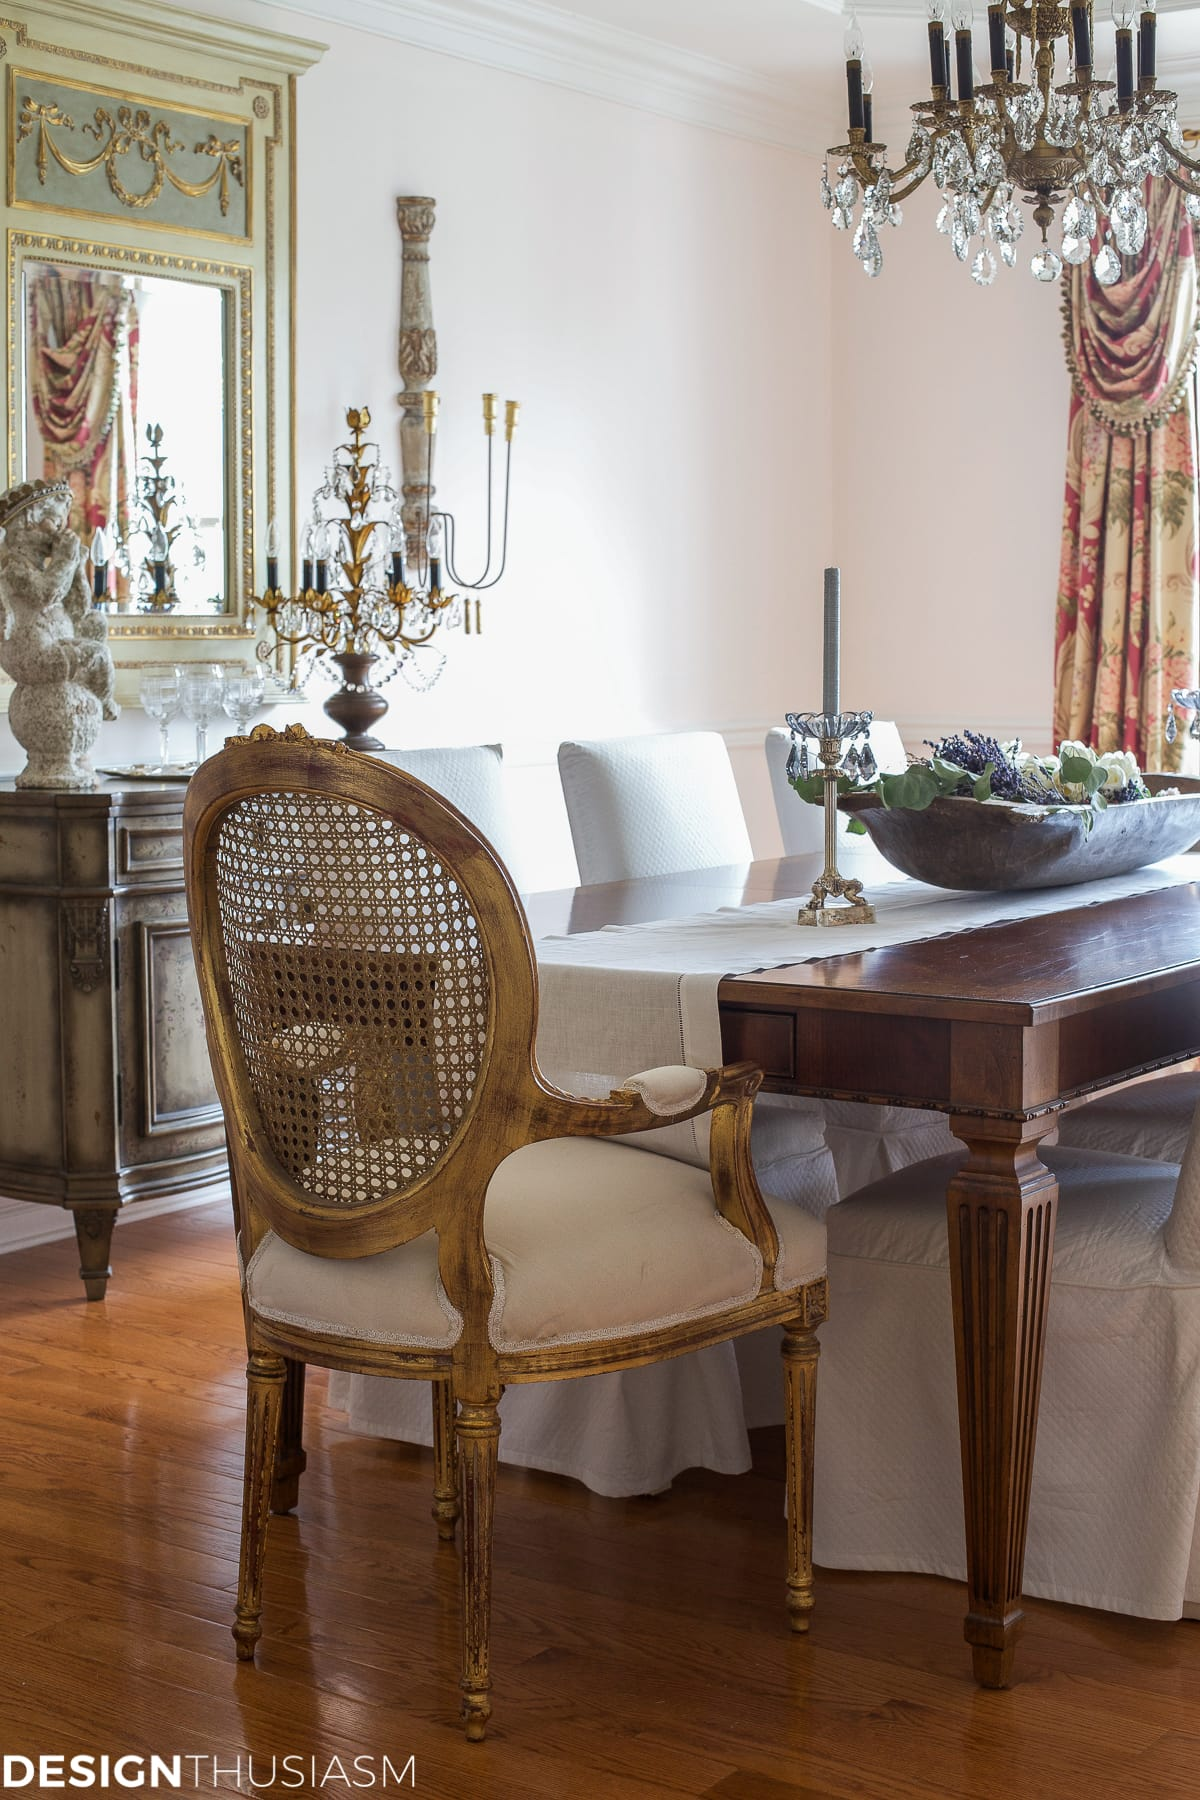 Dining Room Accessories | 3 Updates That Make A Huge Difference    Designthusiasm.com